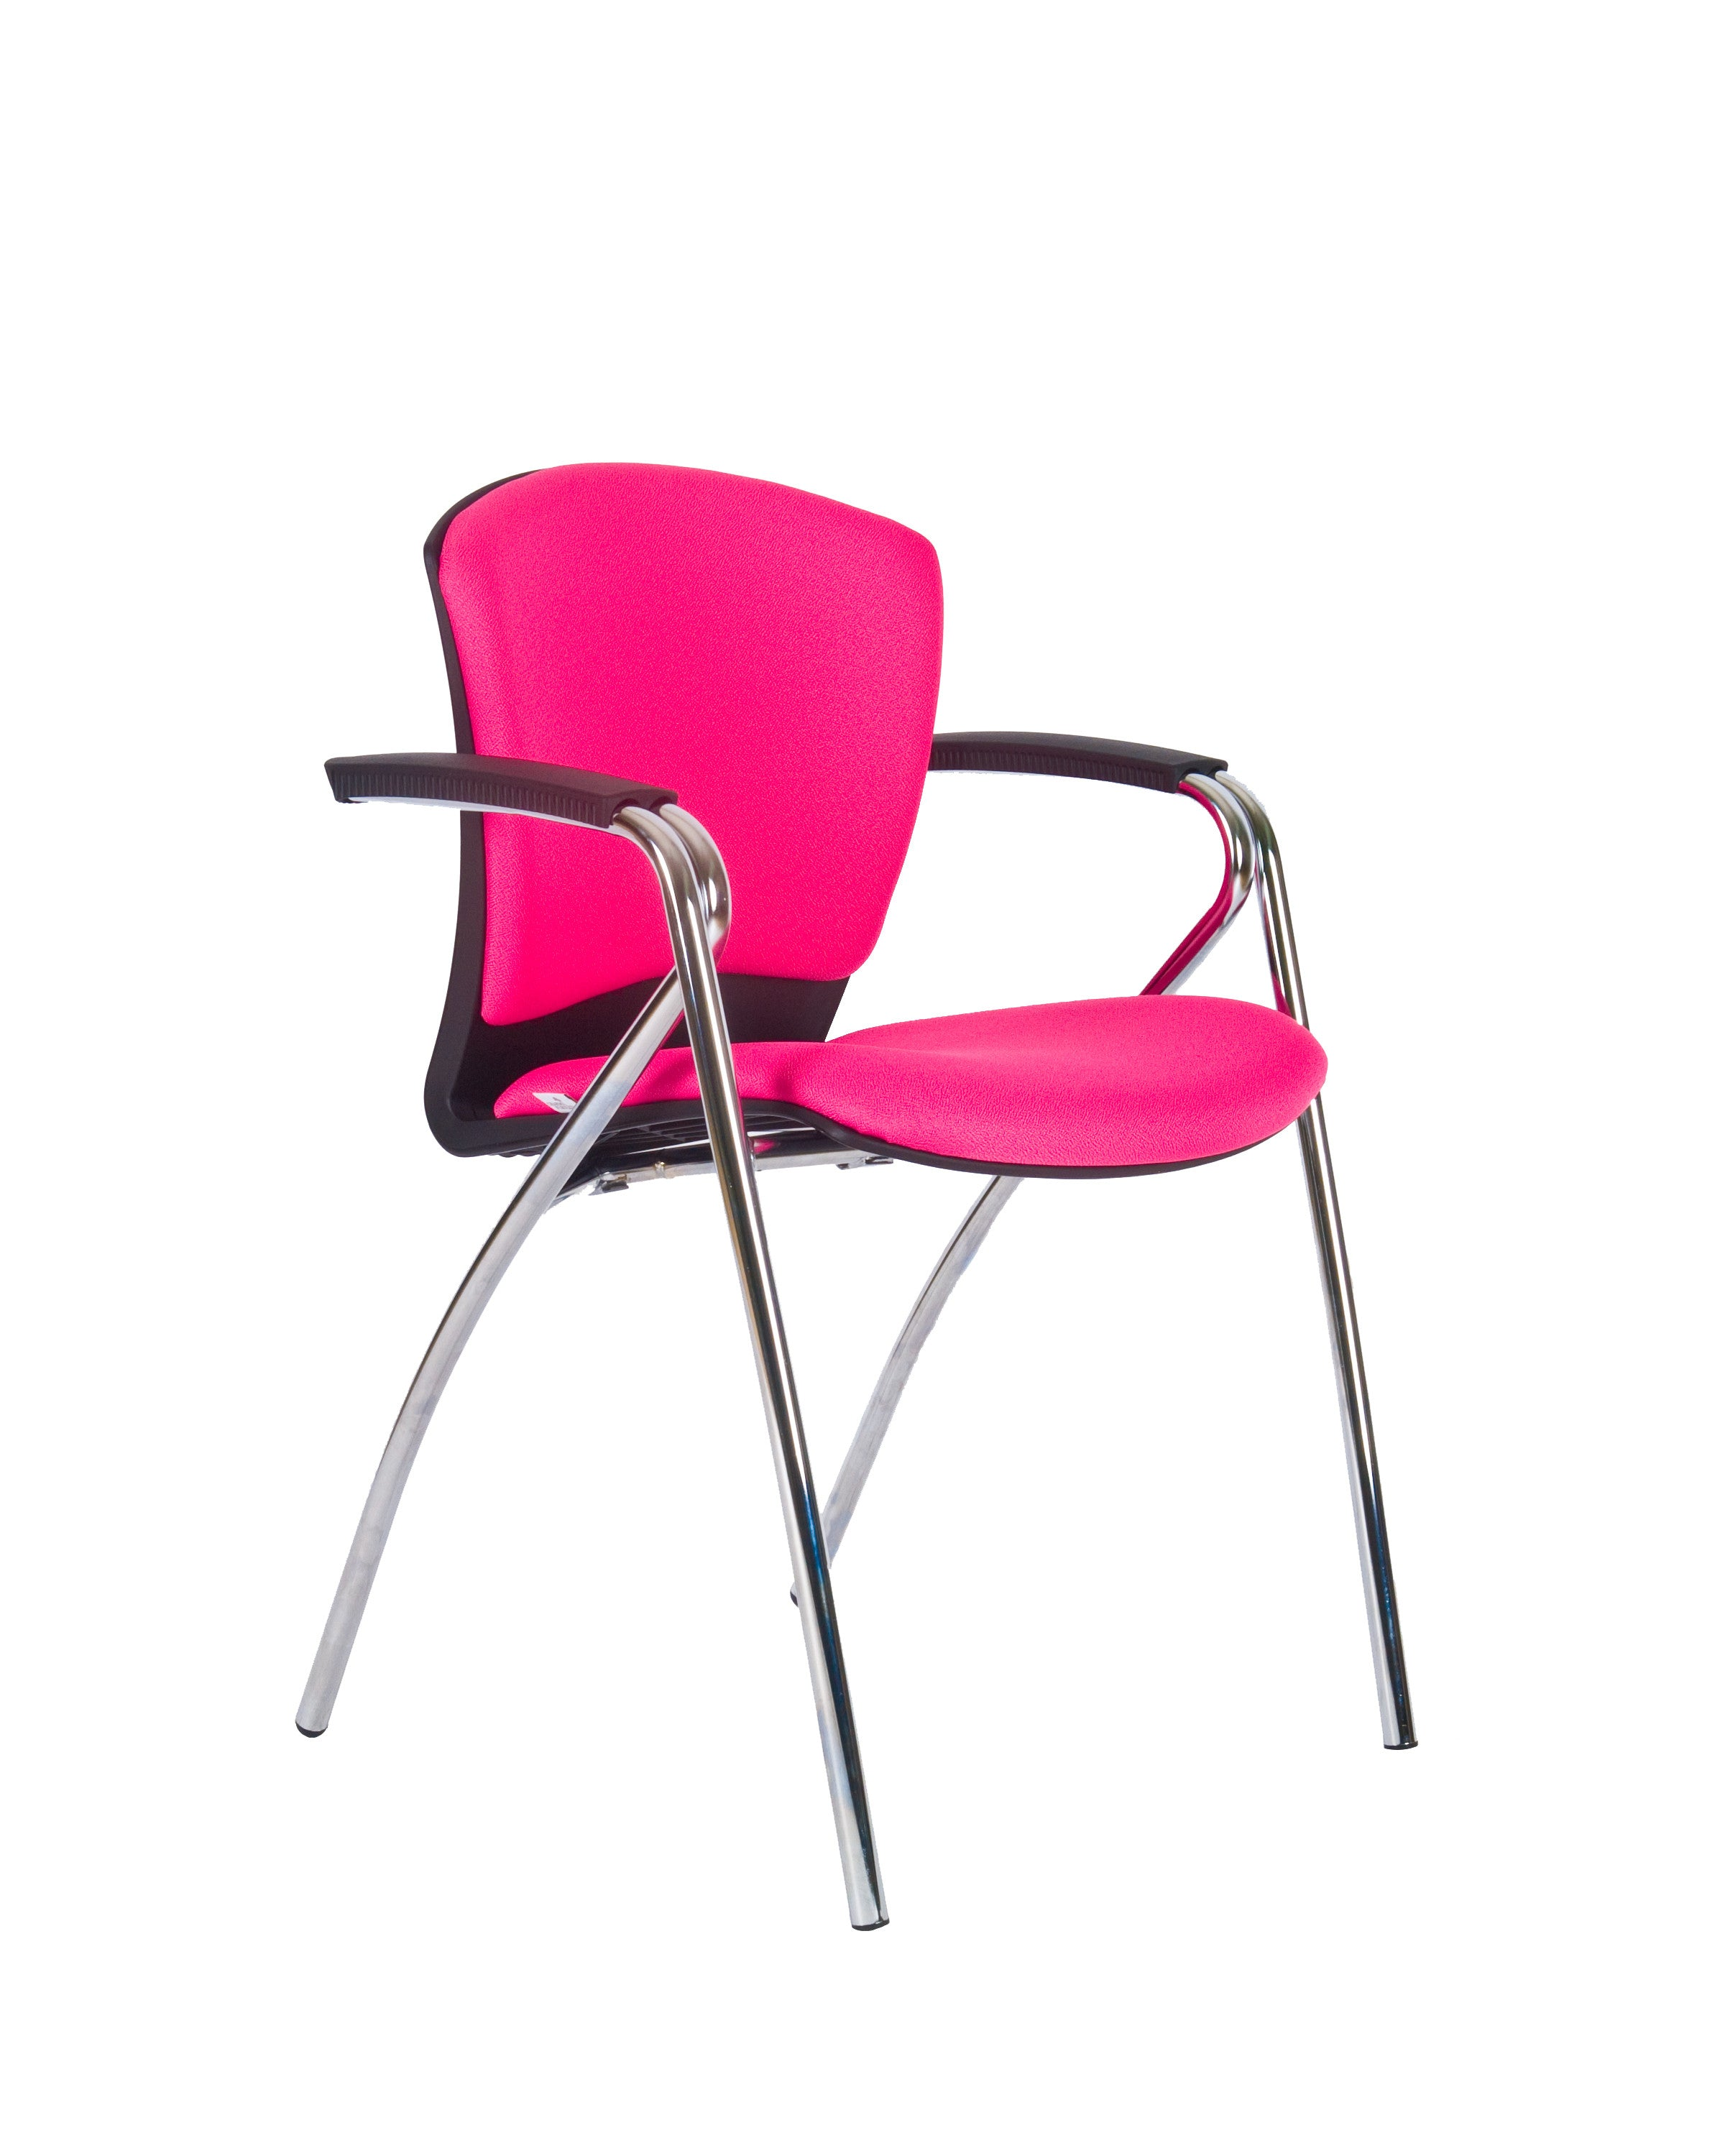 Modern Fabric Upholstered Stacking Guest Chair with Arms by Charm Furniture (Pink)